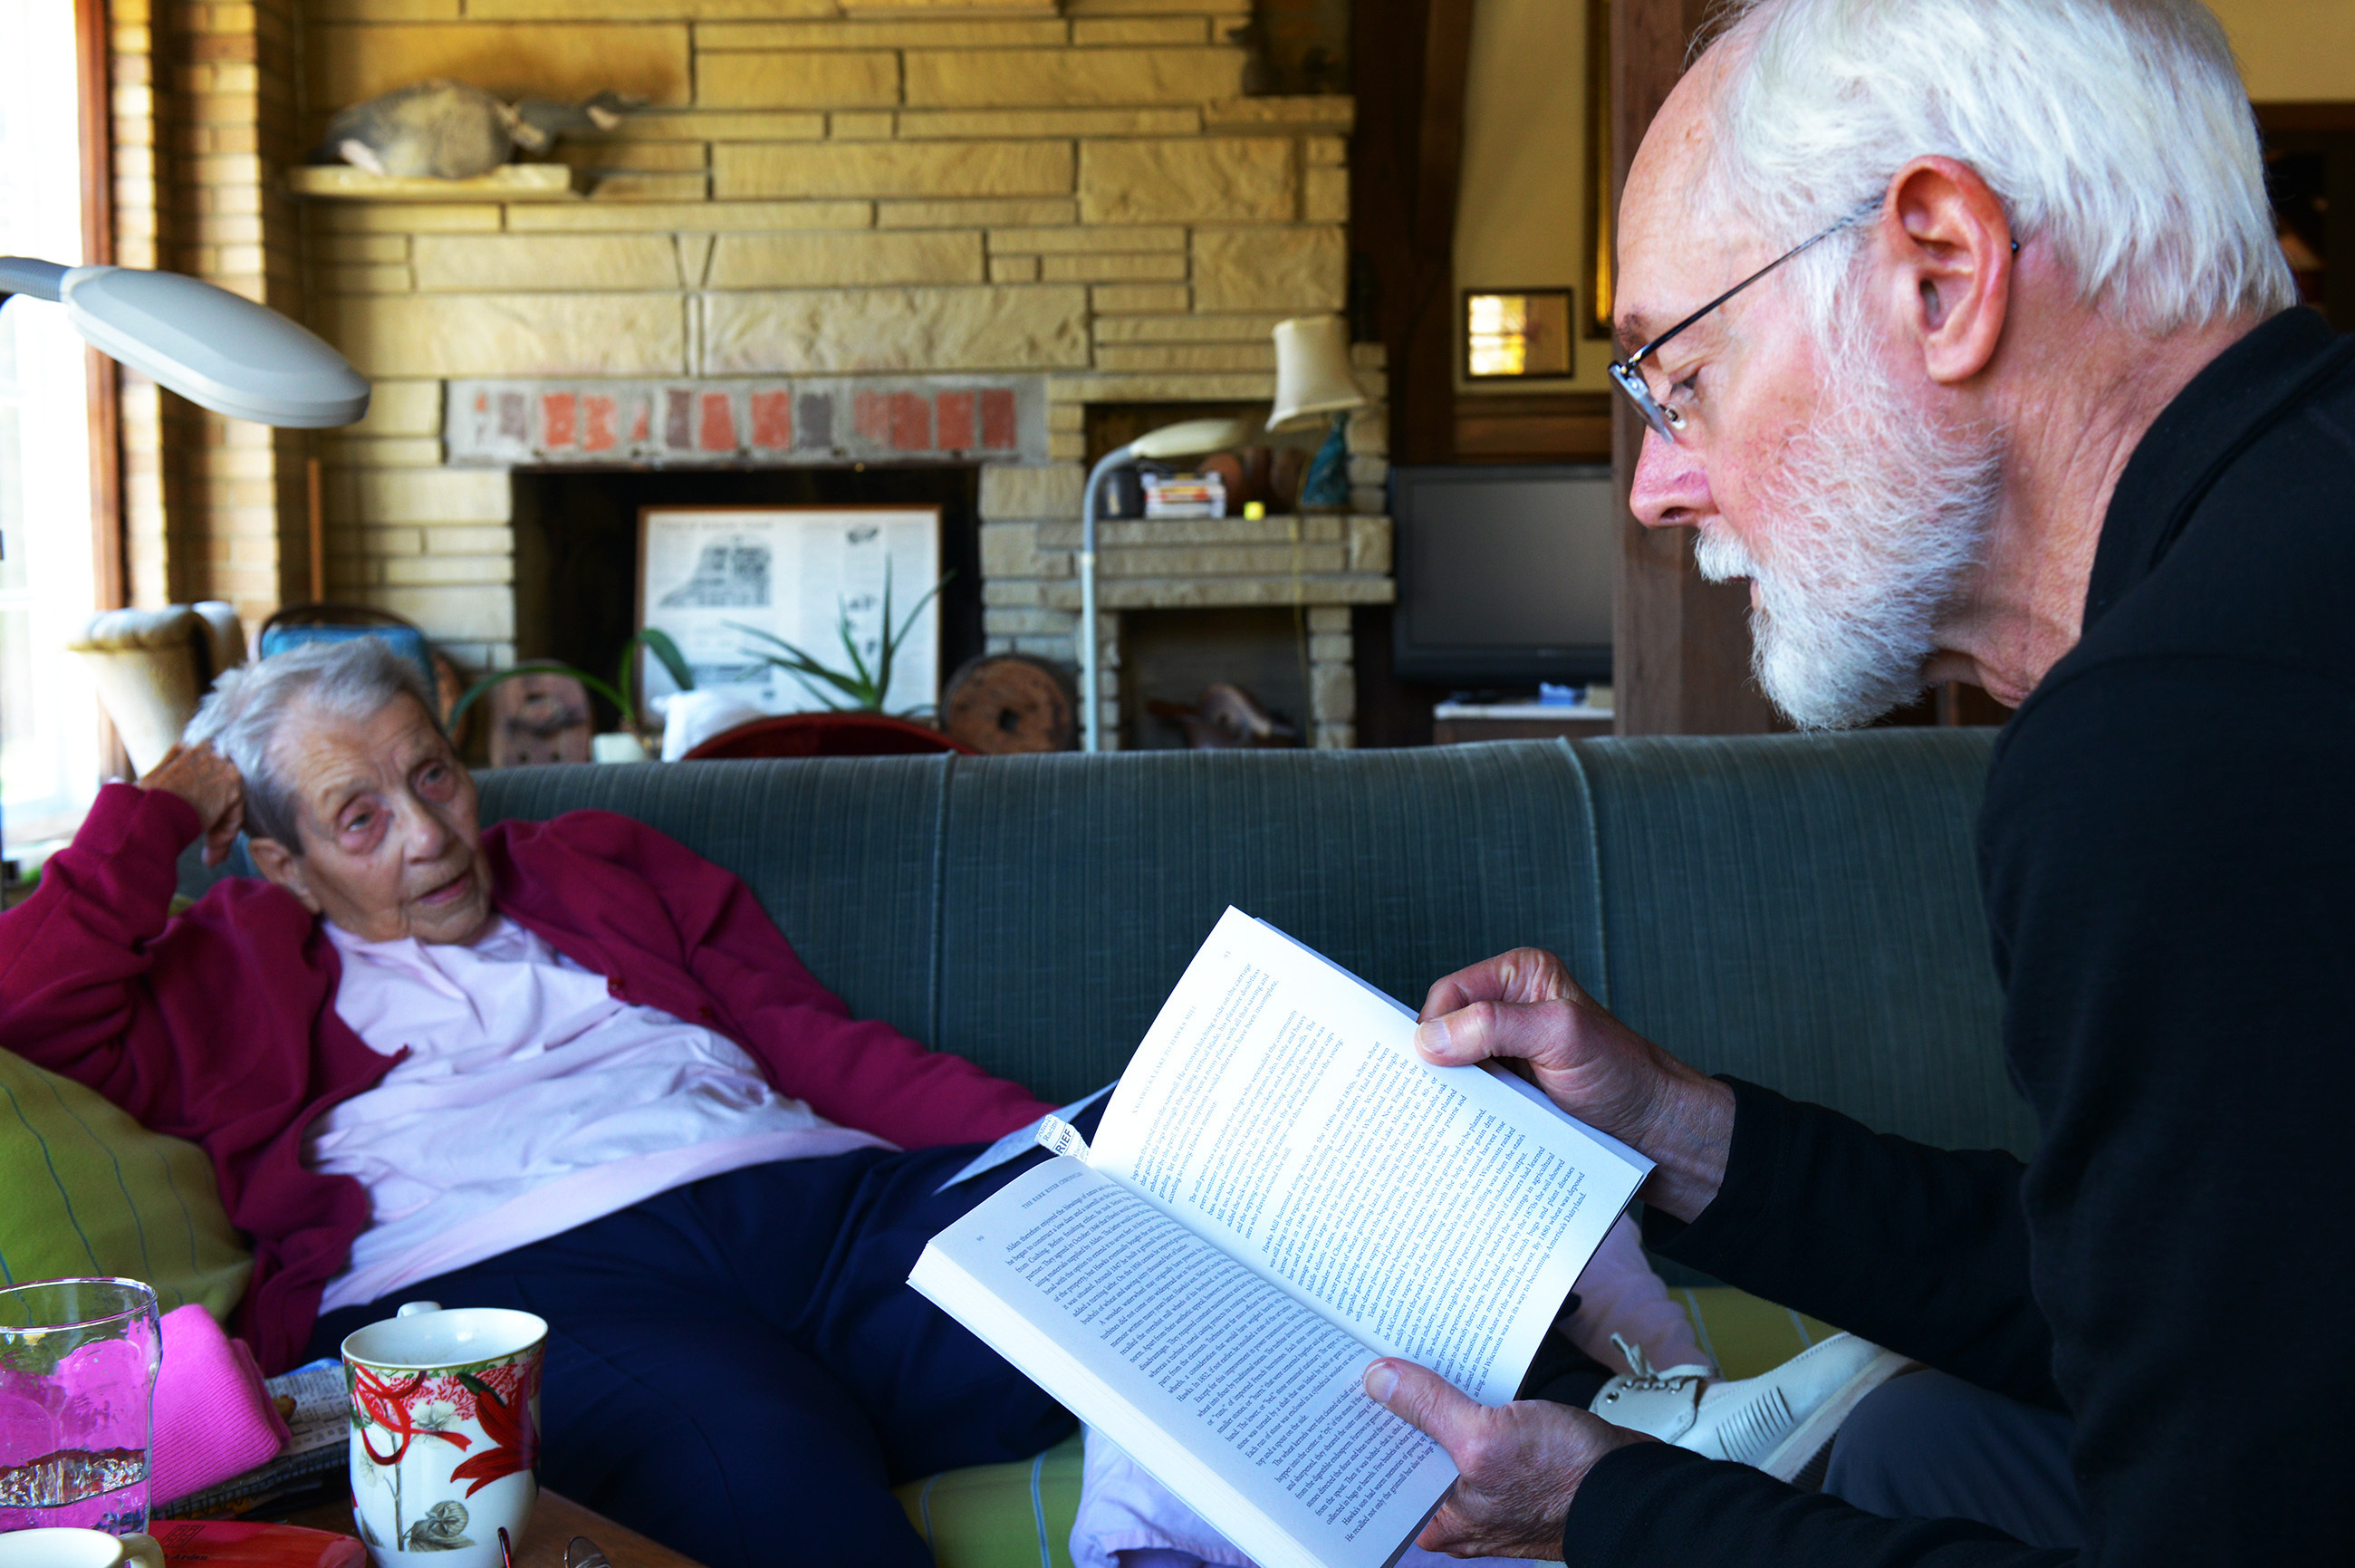 Margaret Zerwekh, who has lived in the mill house for half a century, listens to Milton Bates read from his book, Bark River Chronicles. Zerwekh's home is a treasure trove of Delafield history.